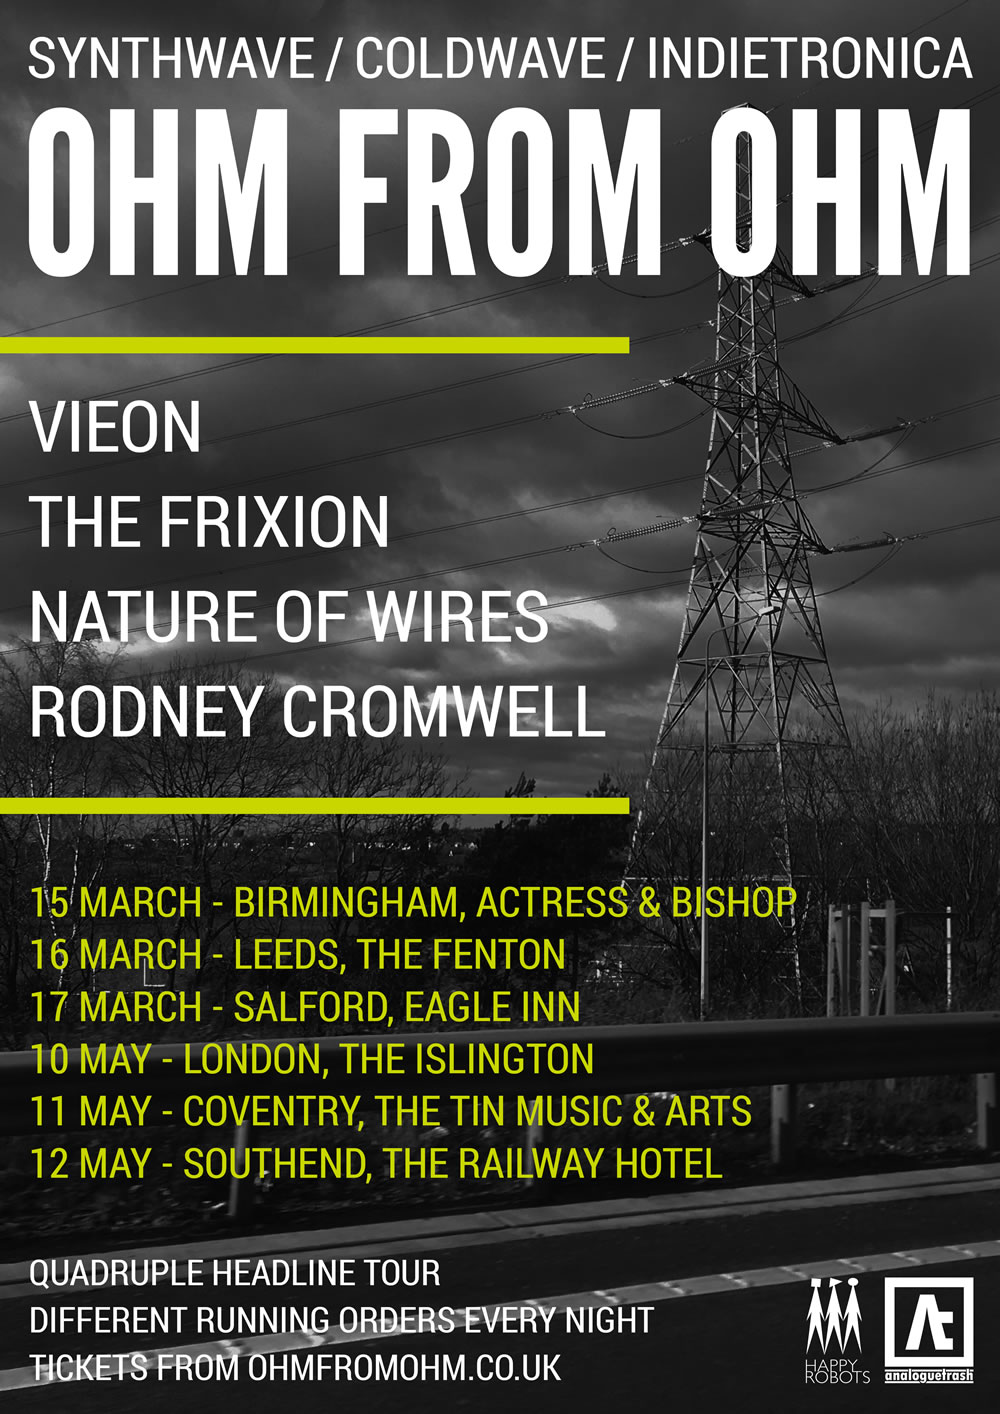 New Year: New Tour - introducing Ohm From Ohm